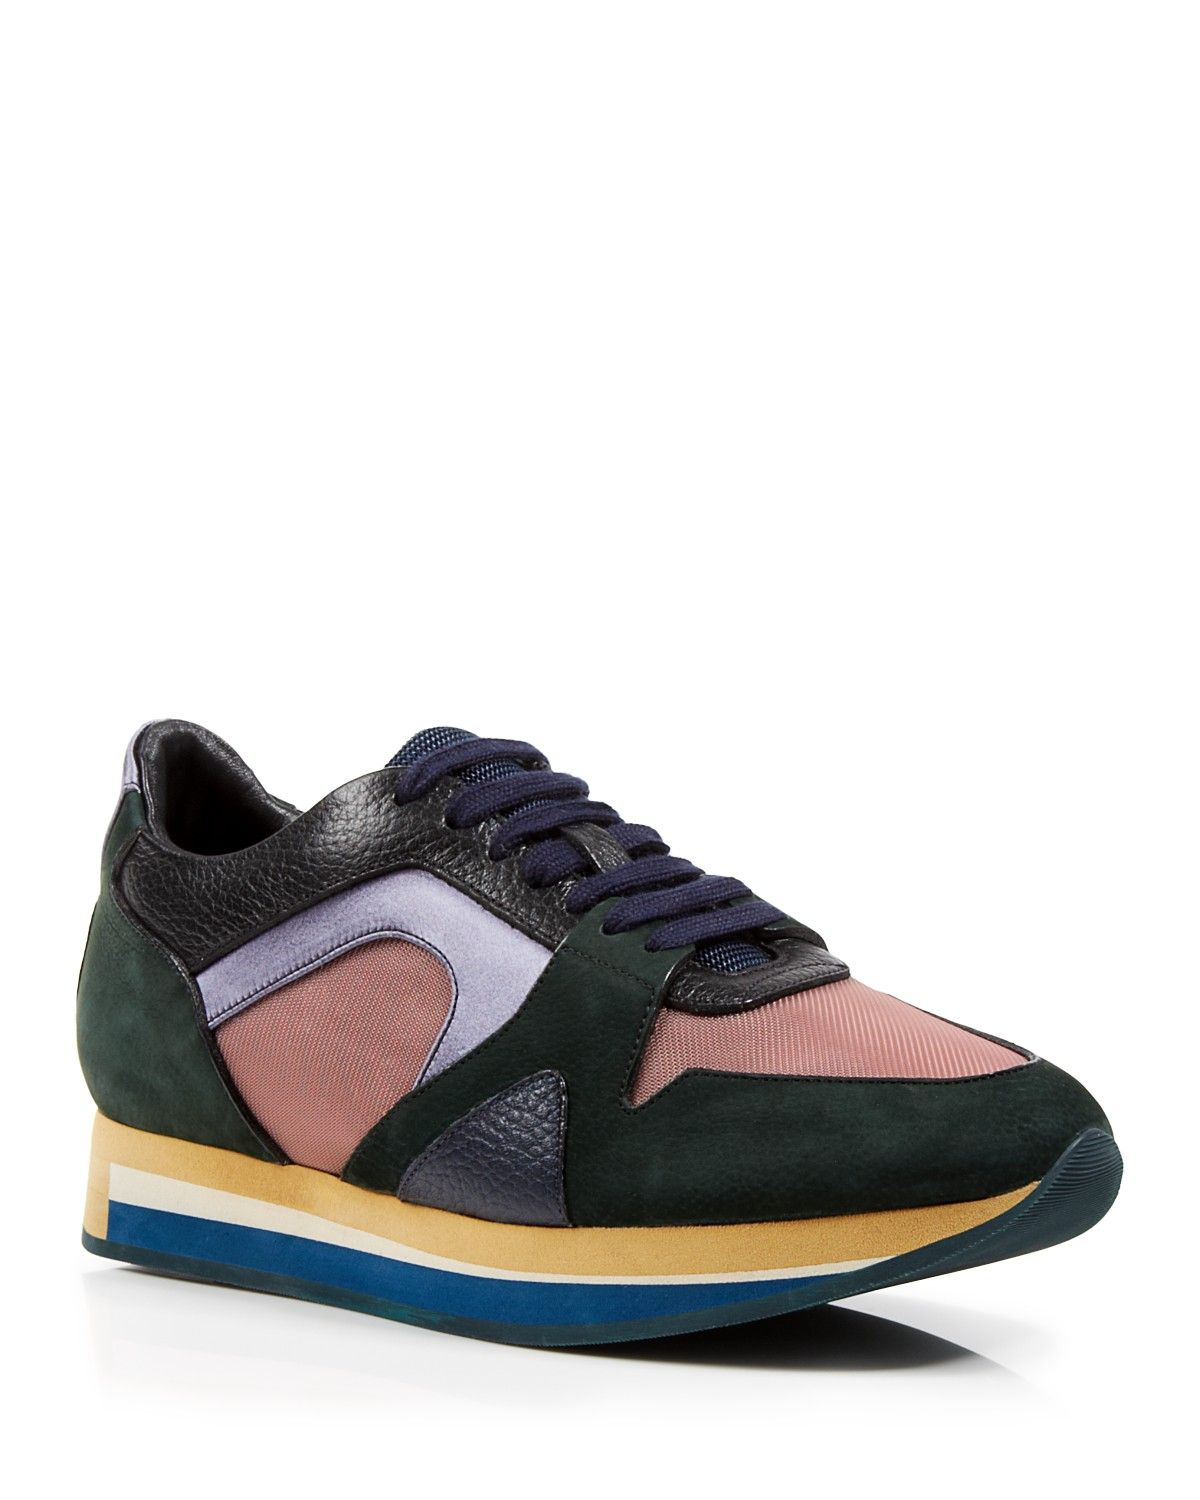 Burberry Lace Up Sneakers - The Field Color Block | Bloomingdale's